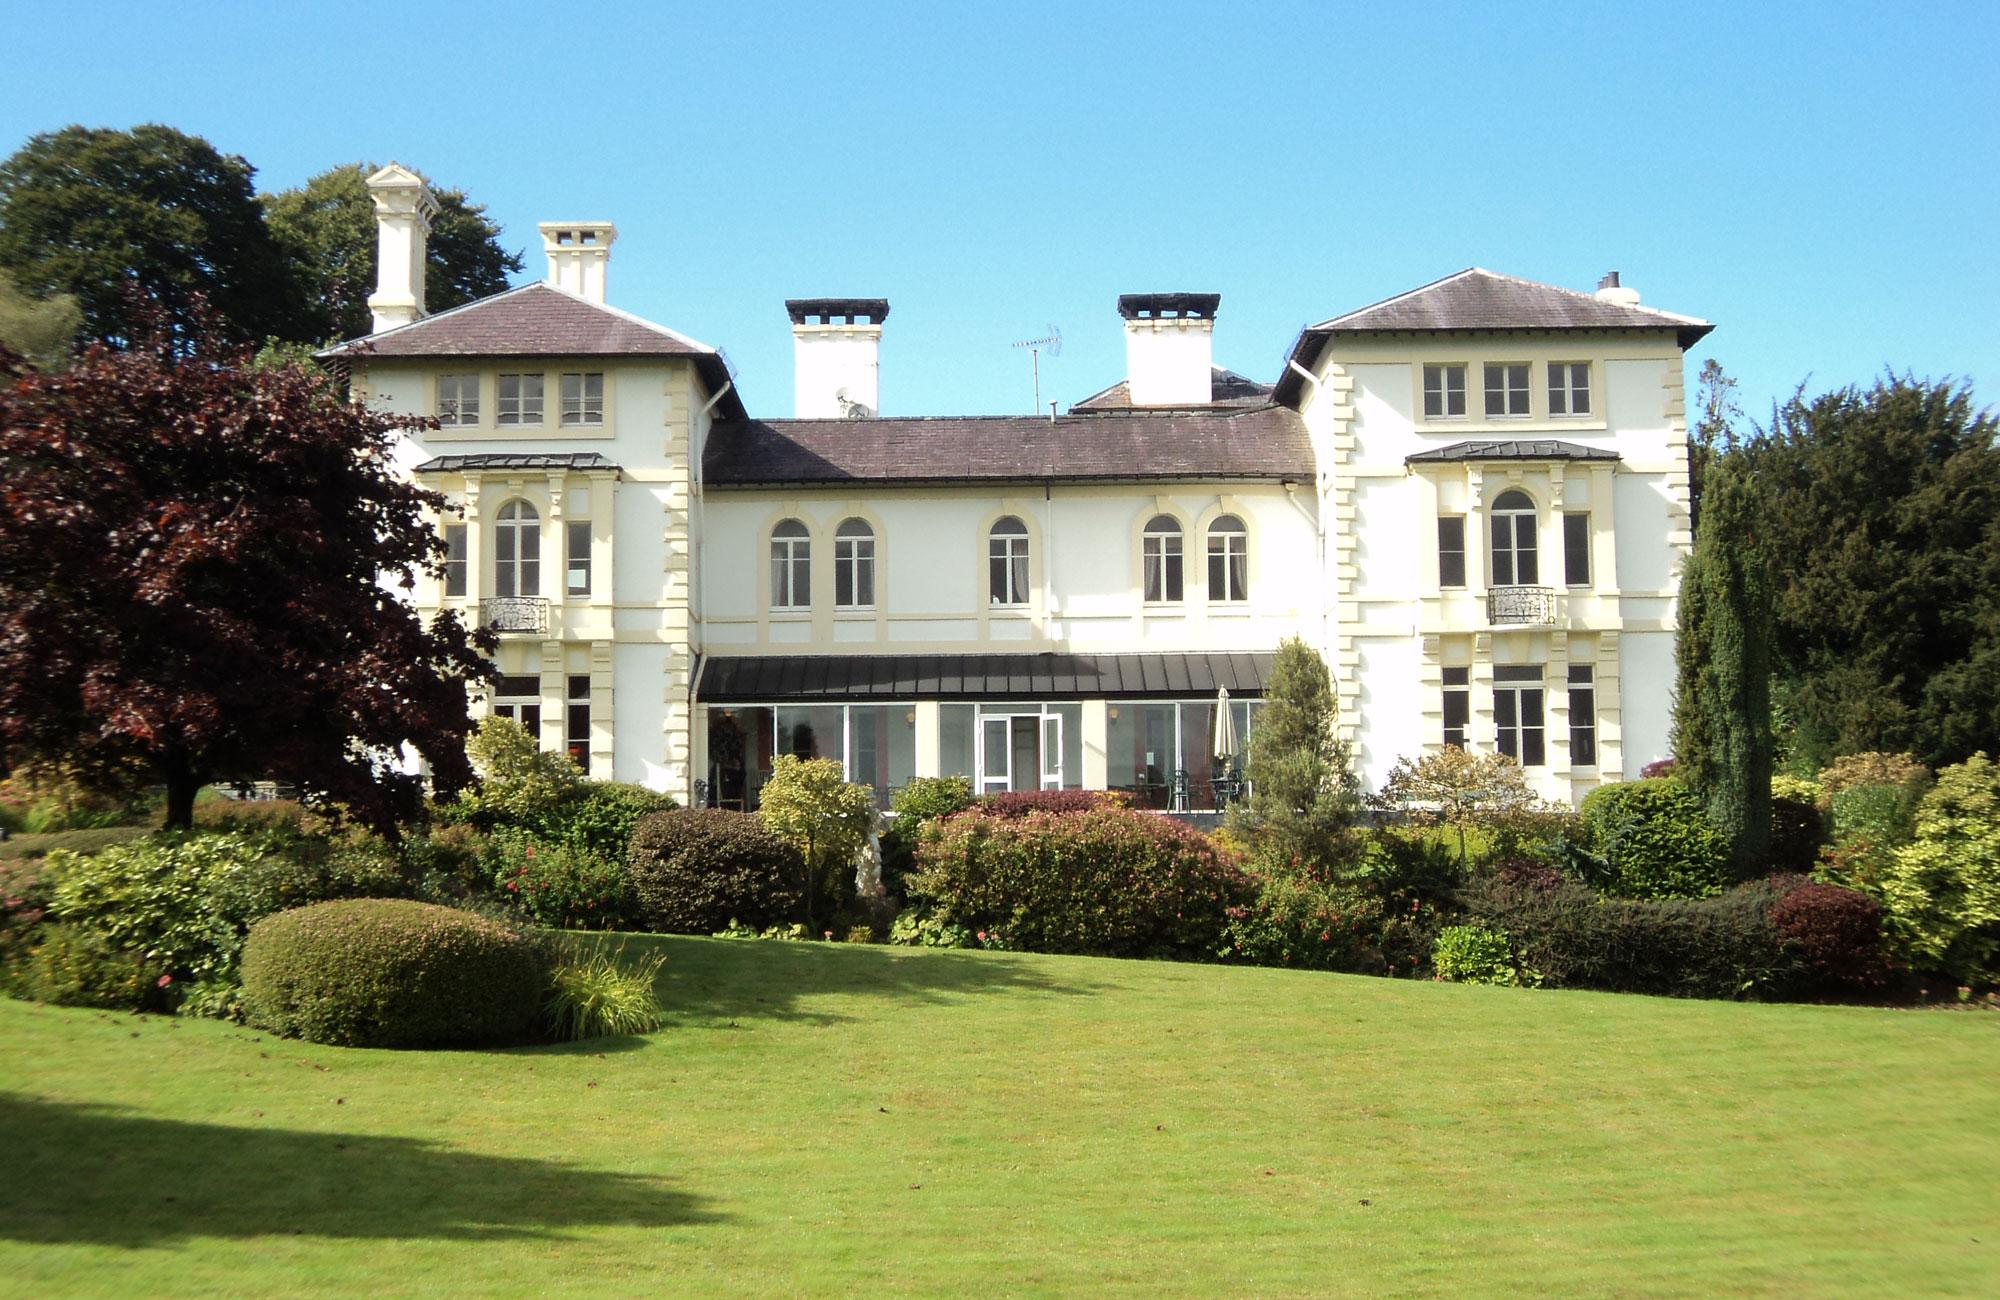 Hotels in Ceredigion holidays at Cool Places